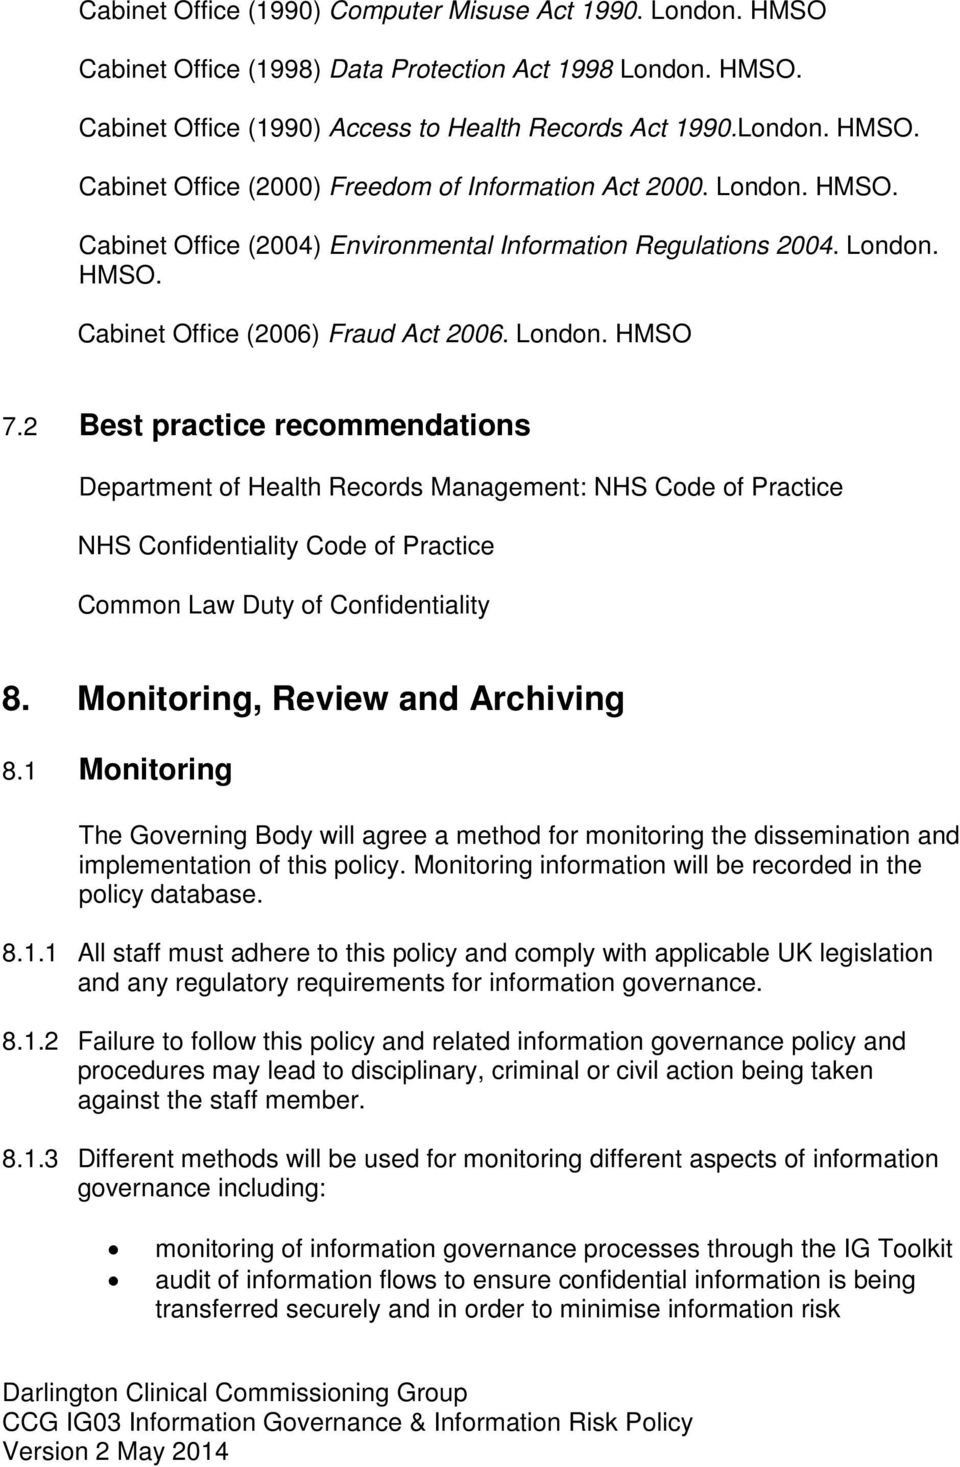 2 Best practice recommendations Department of Health Records Management: NHS Code of Practice NHS Confidentiality Code of Practice Common Law Duty of Confidentiality 8.